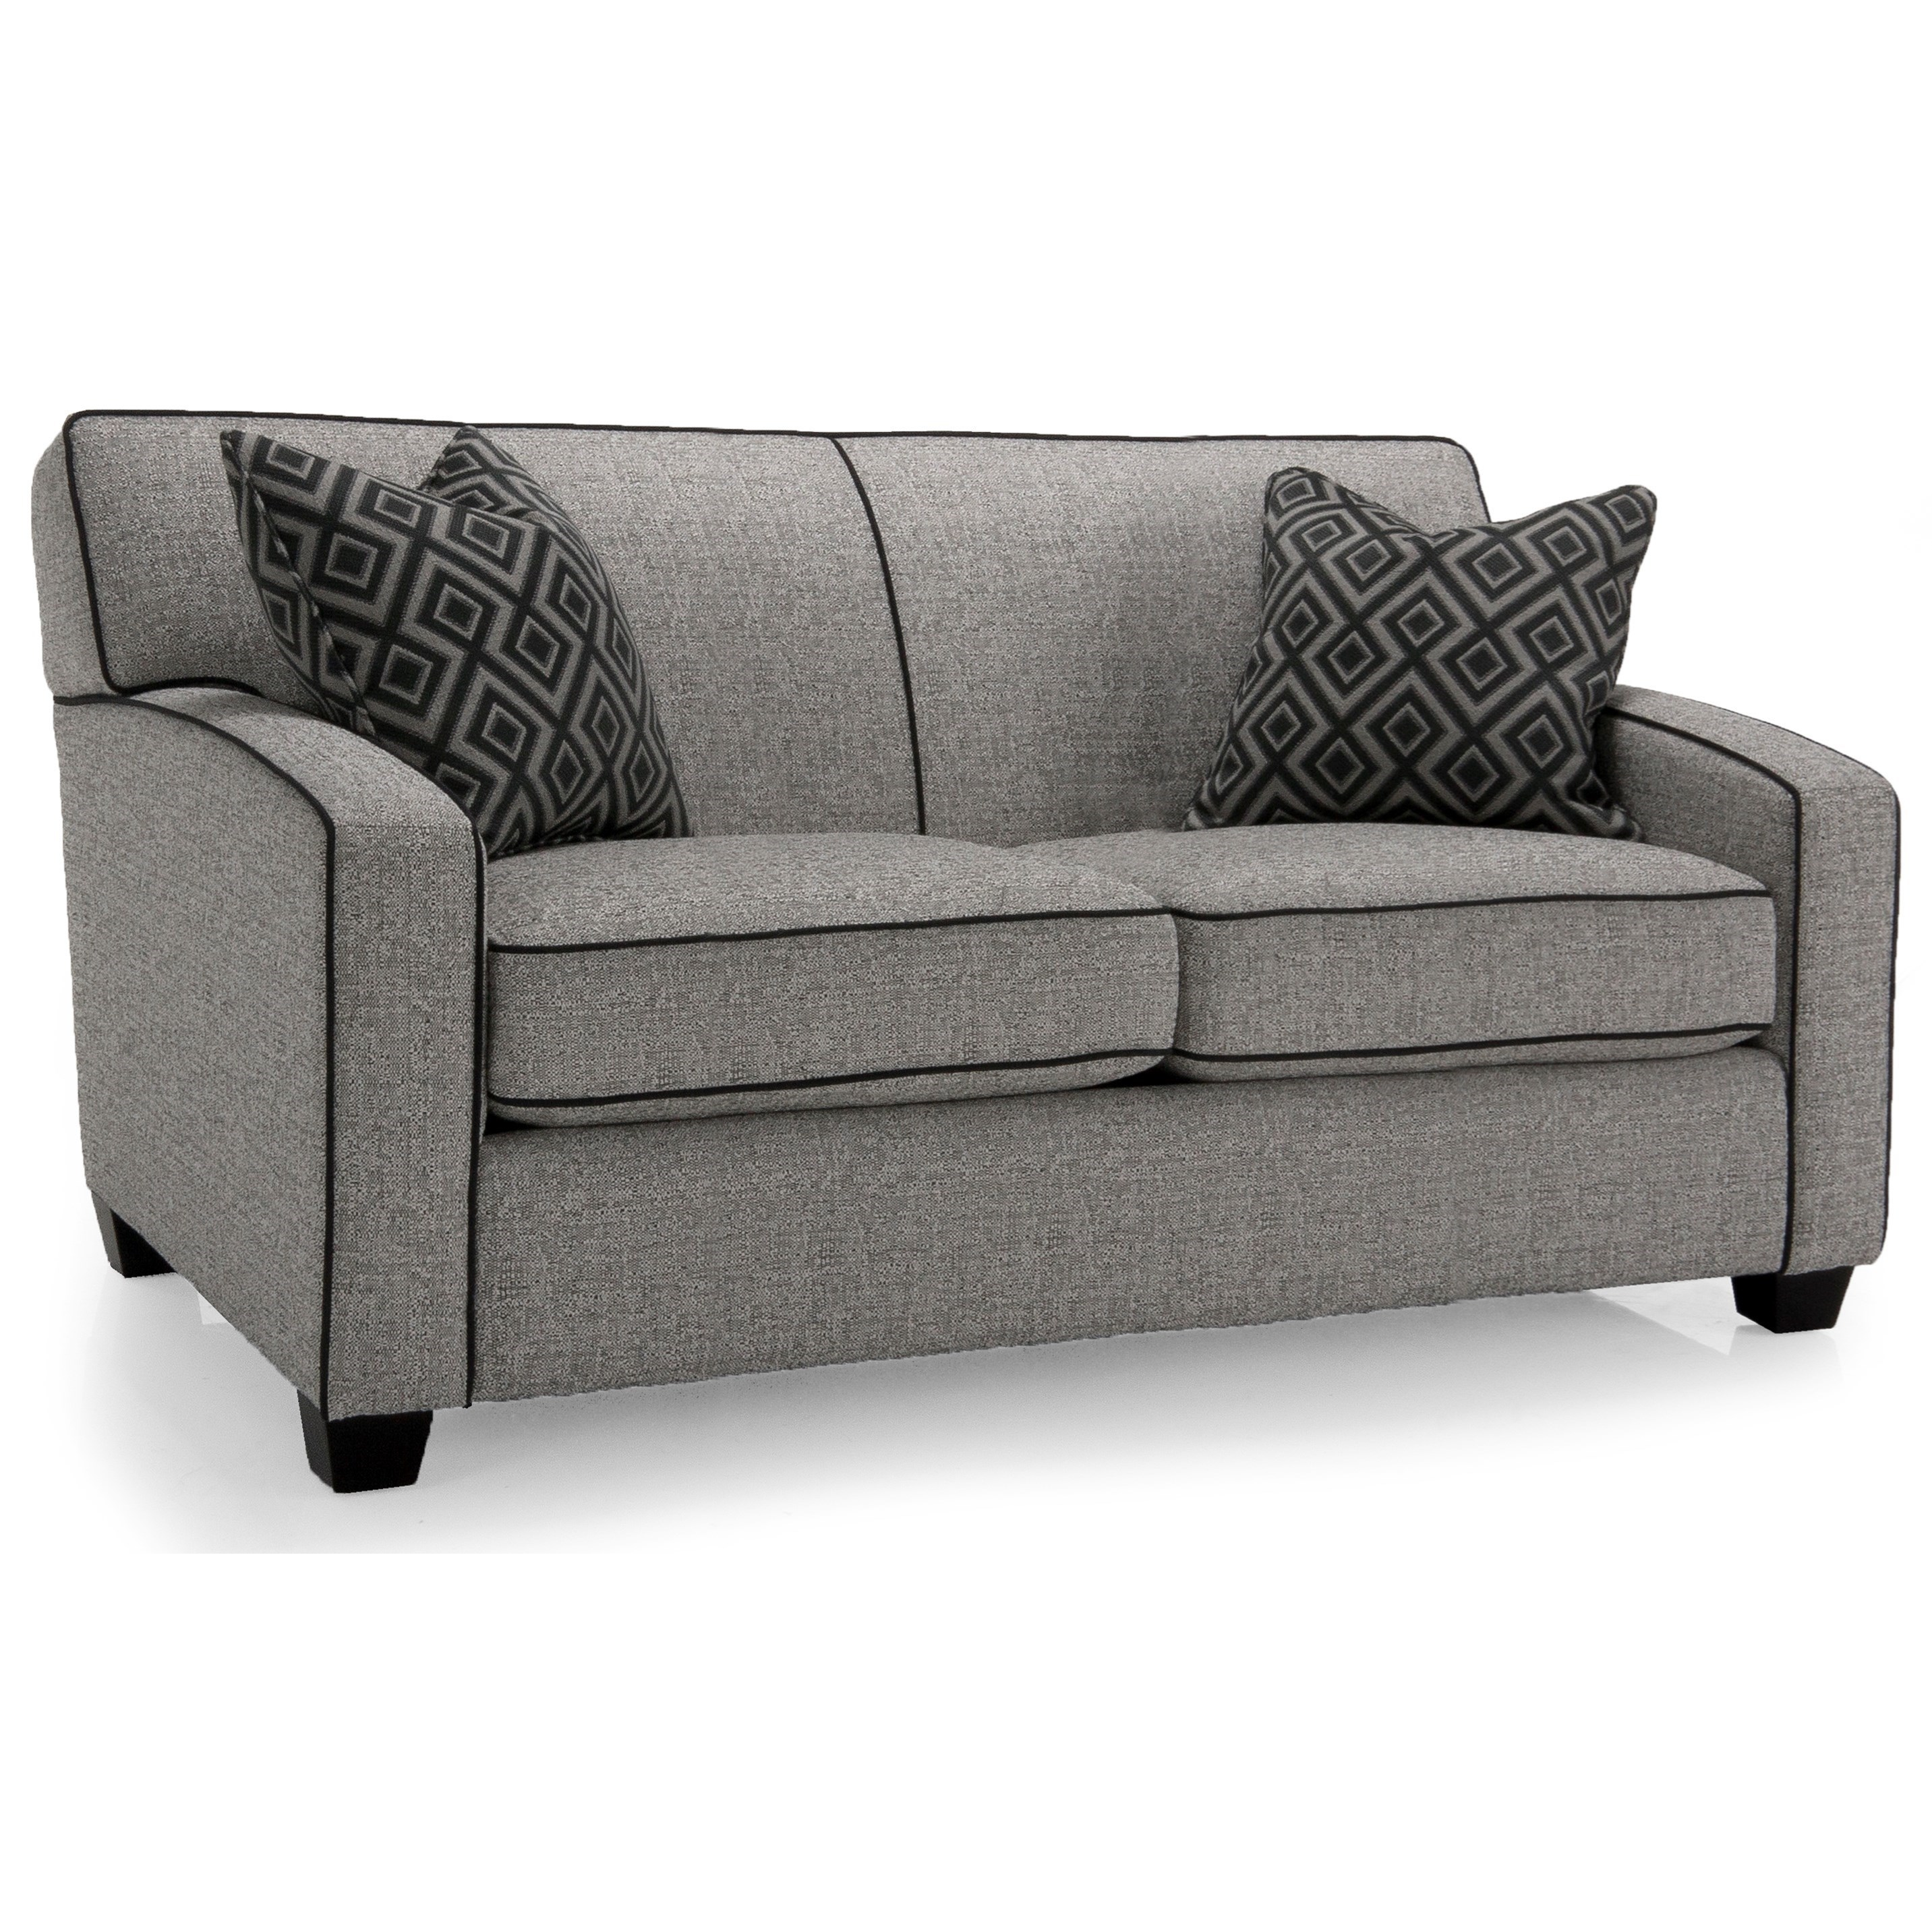 2401 Loveseat by Decor-Rest at Rooms for Less